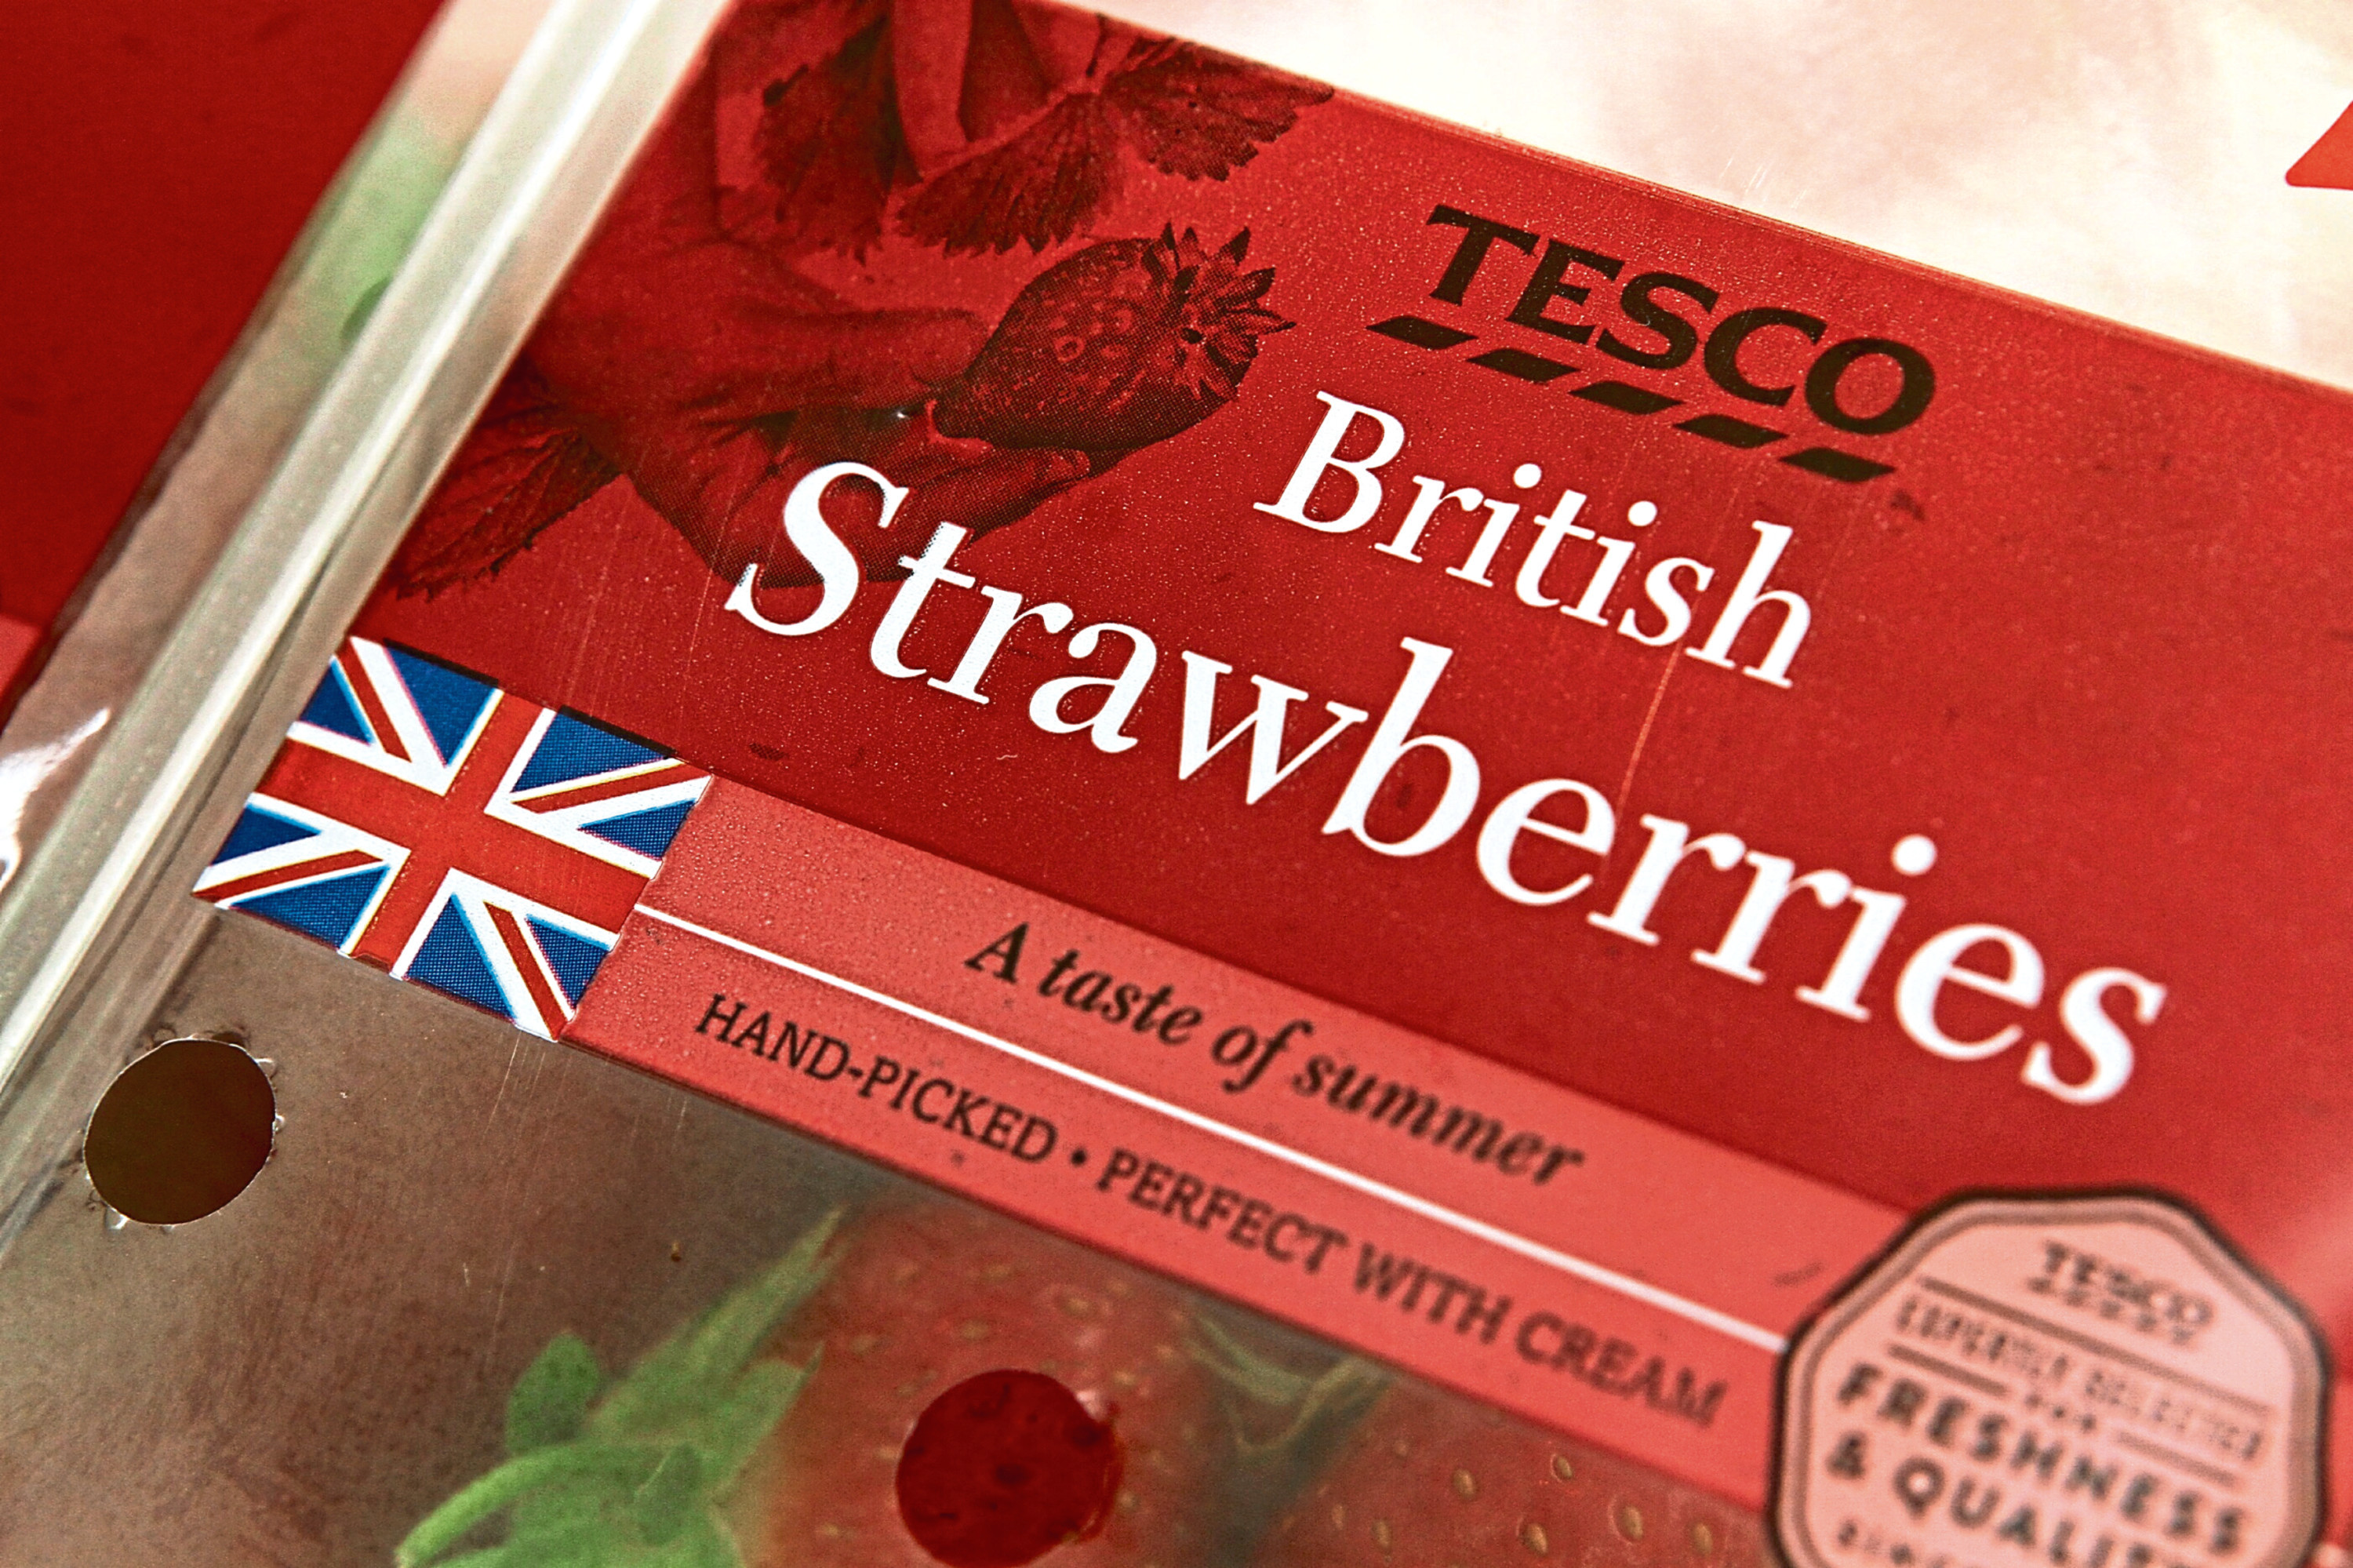 Courier News - story - Scottish/British strawberries. Picture shows some Scottish strawberries, picked up in the Tesco store at Kingsway West Retail Park today, Tuesday 23rd August 2016, branded as 'British' with a Union Jack, even although they are from Perthshire, as it shows on the label.